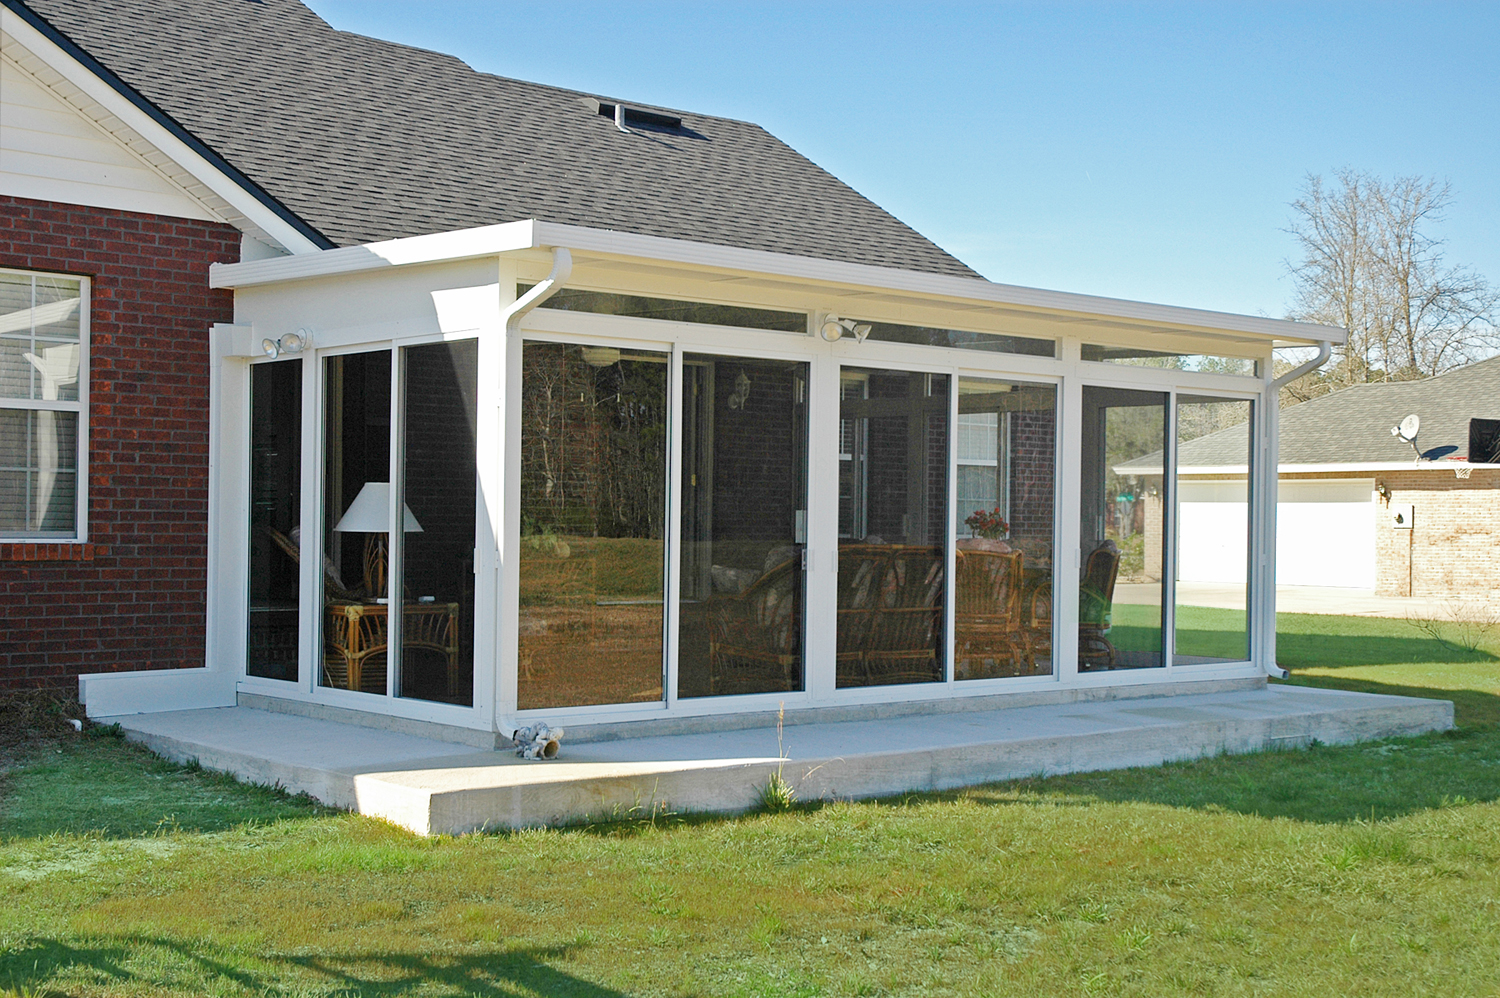 Betterliving patio sunrooms of pittsburgh studio rooms for Sunroom blueprints free